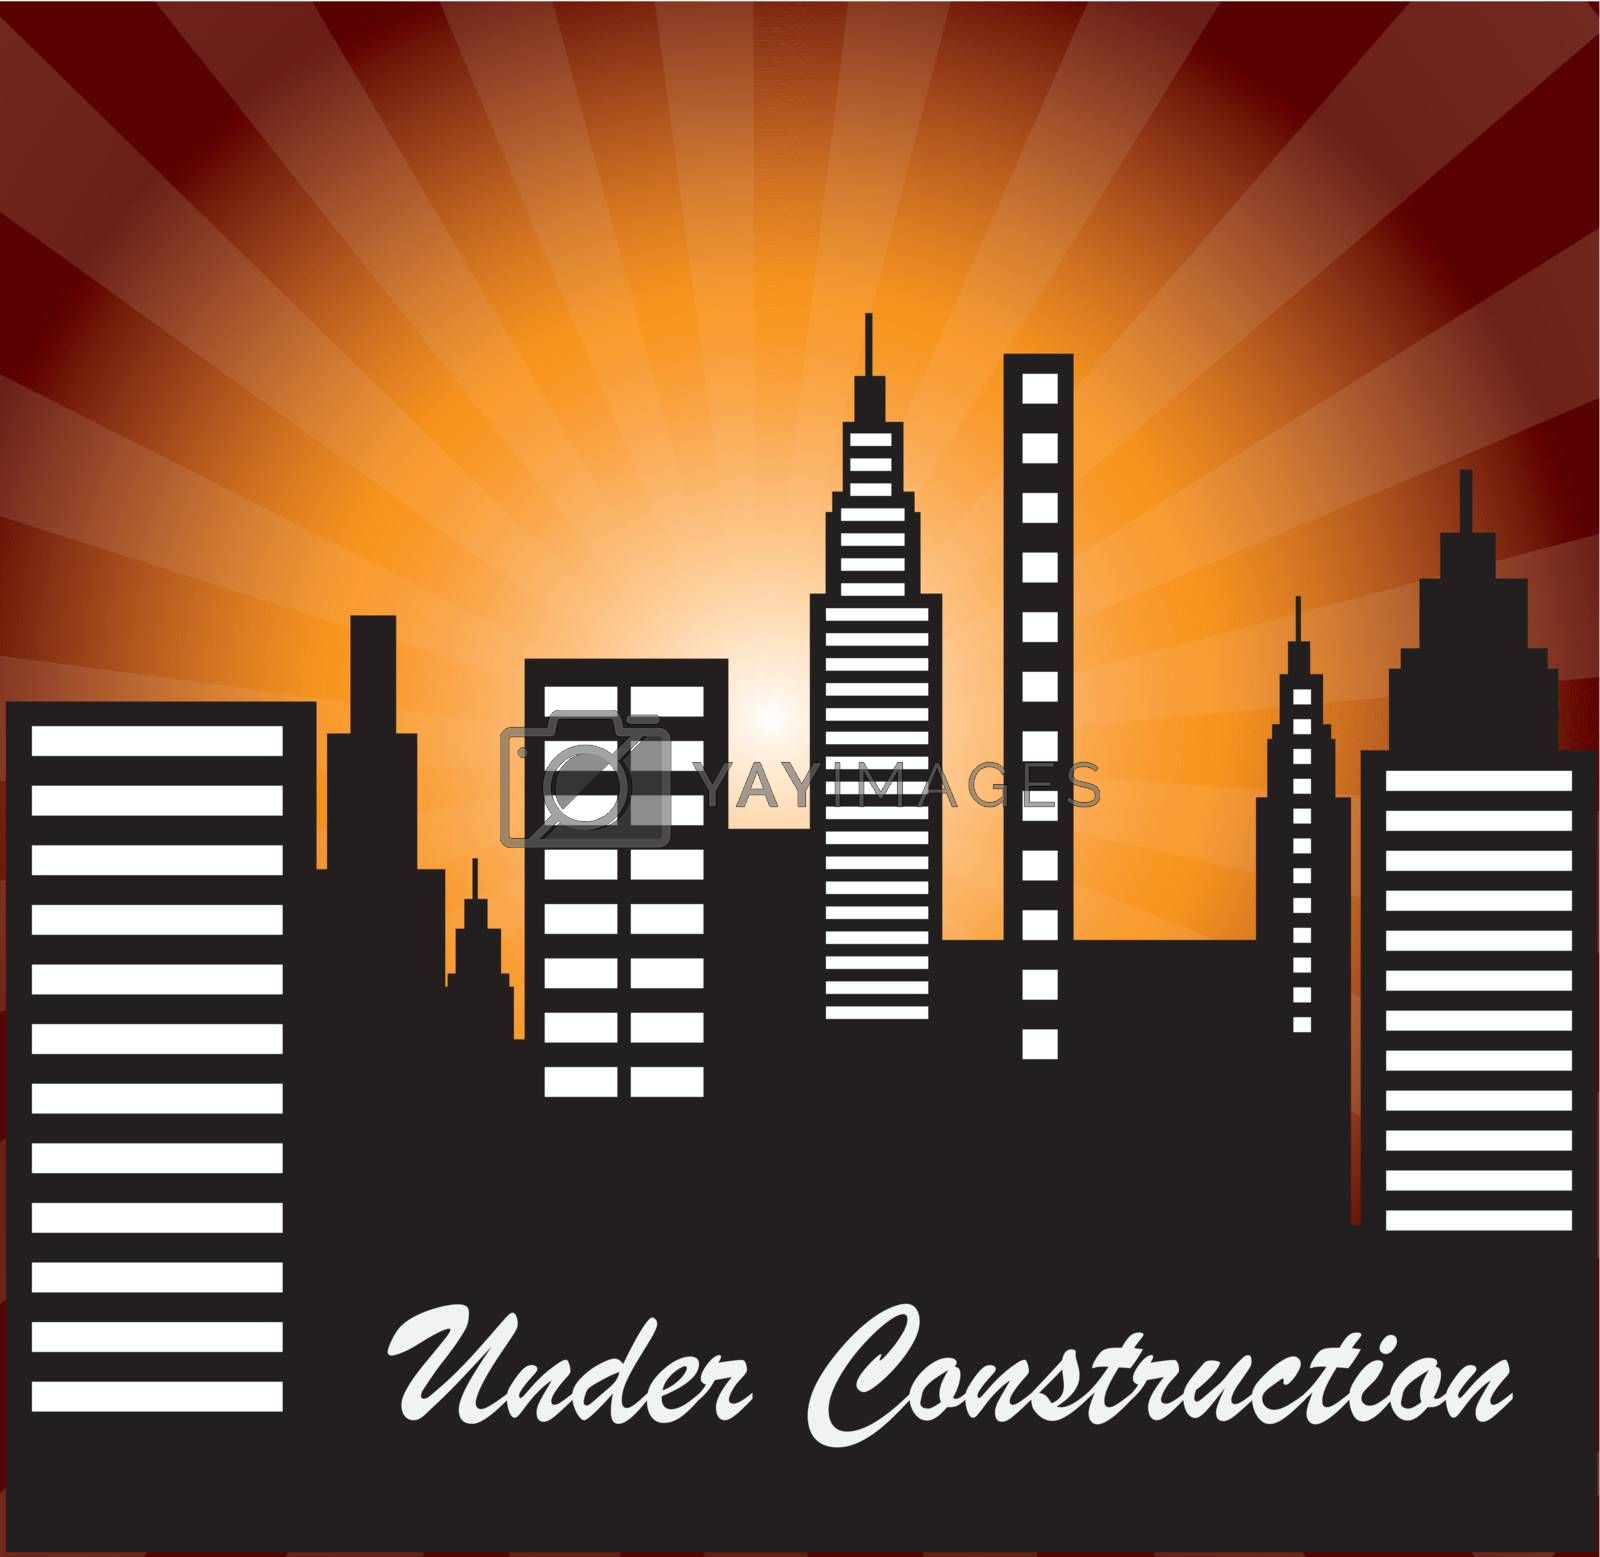 Under construction with building over light background